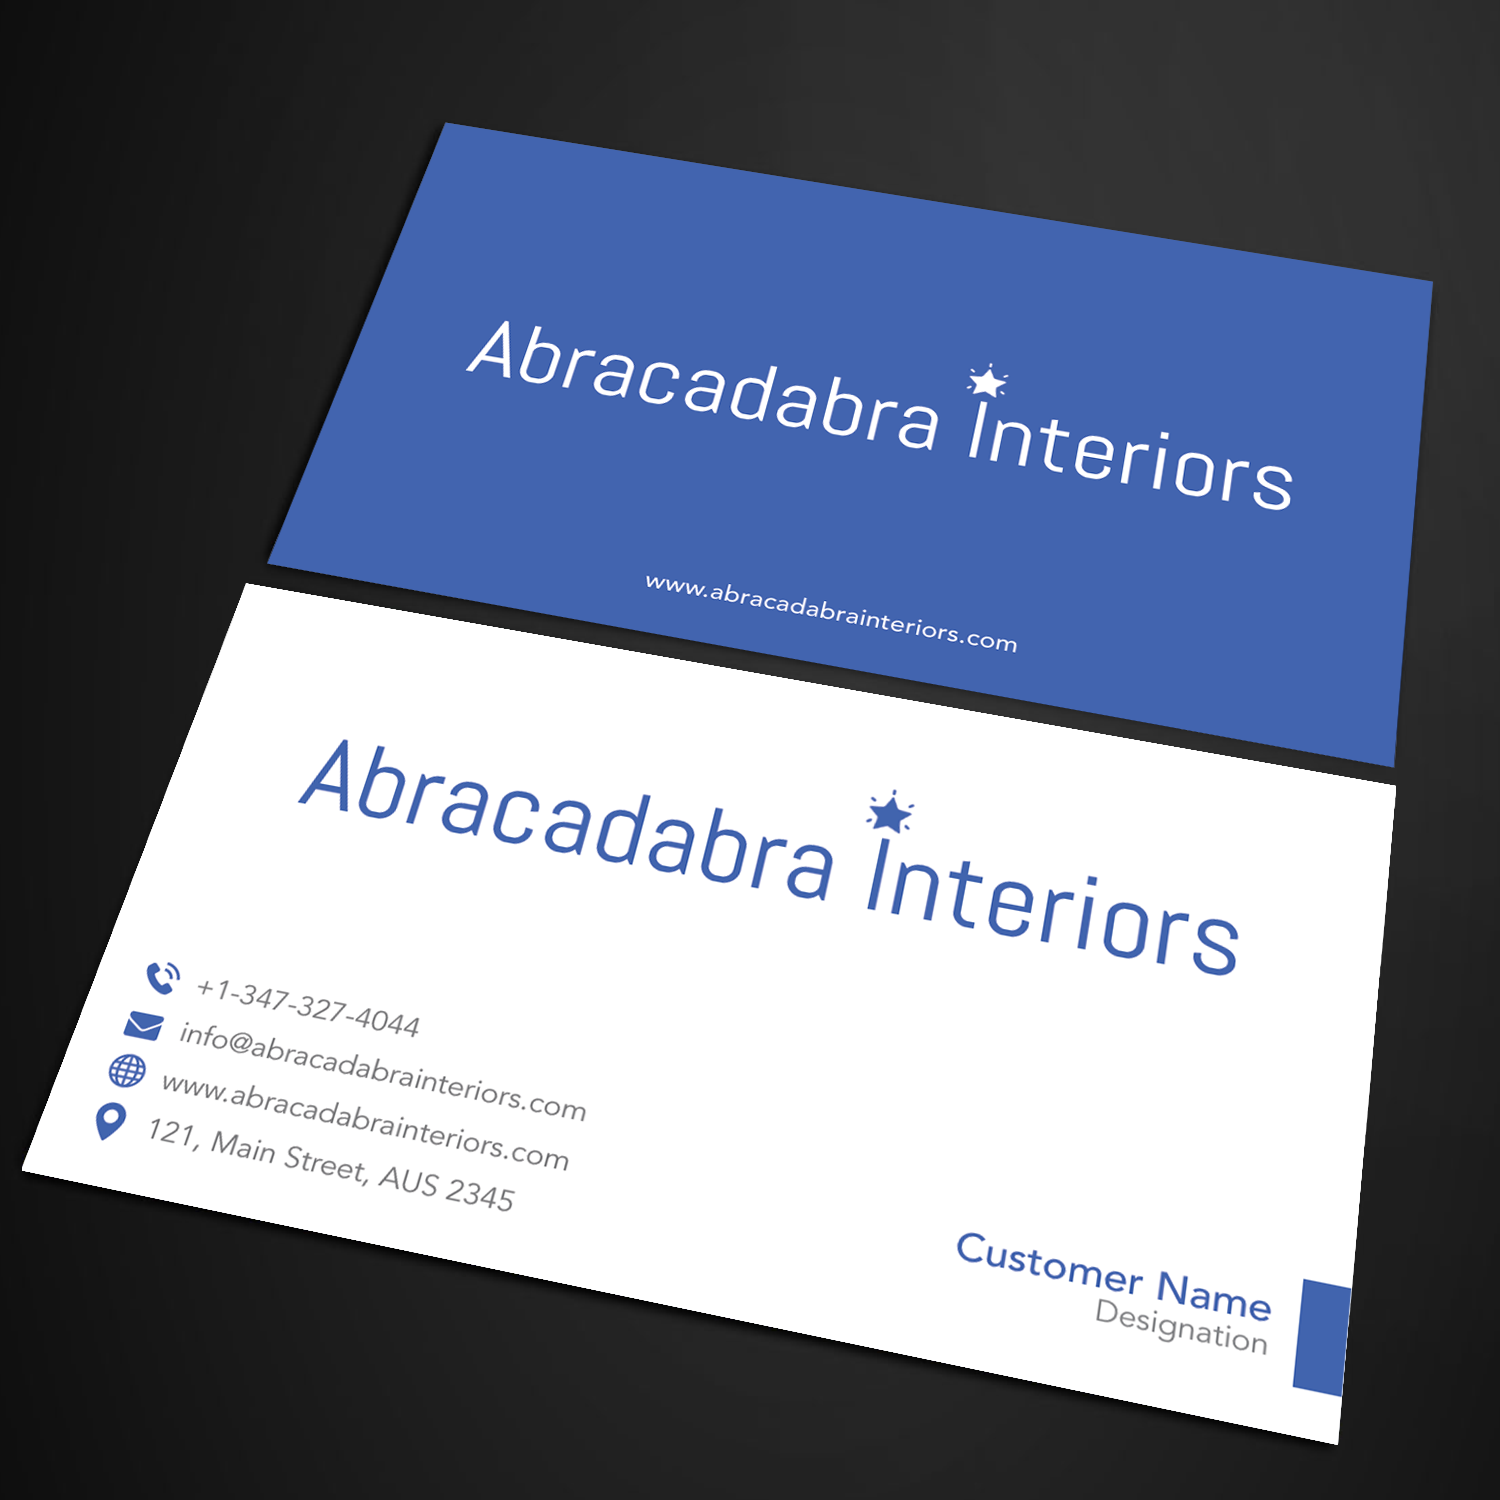 Elegant modern real estate business card design for abracadabra business card design by sandymanme for abracadabra interiors design 18392185 reheart Image collections